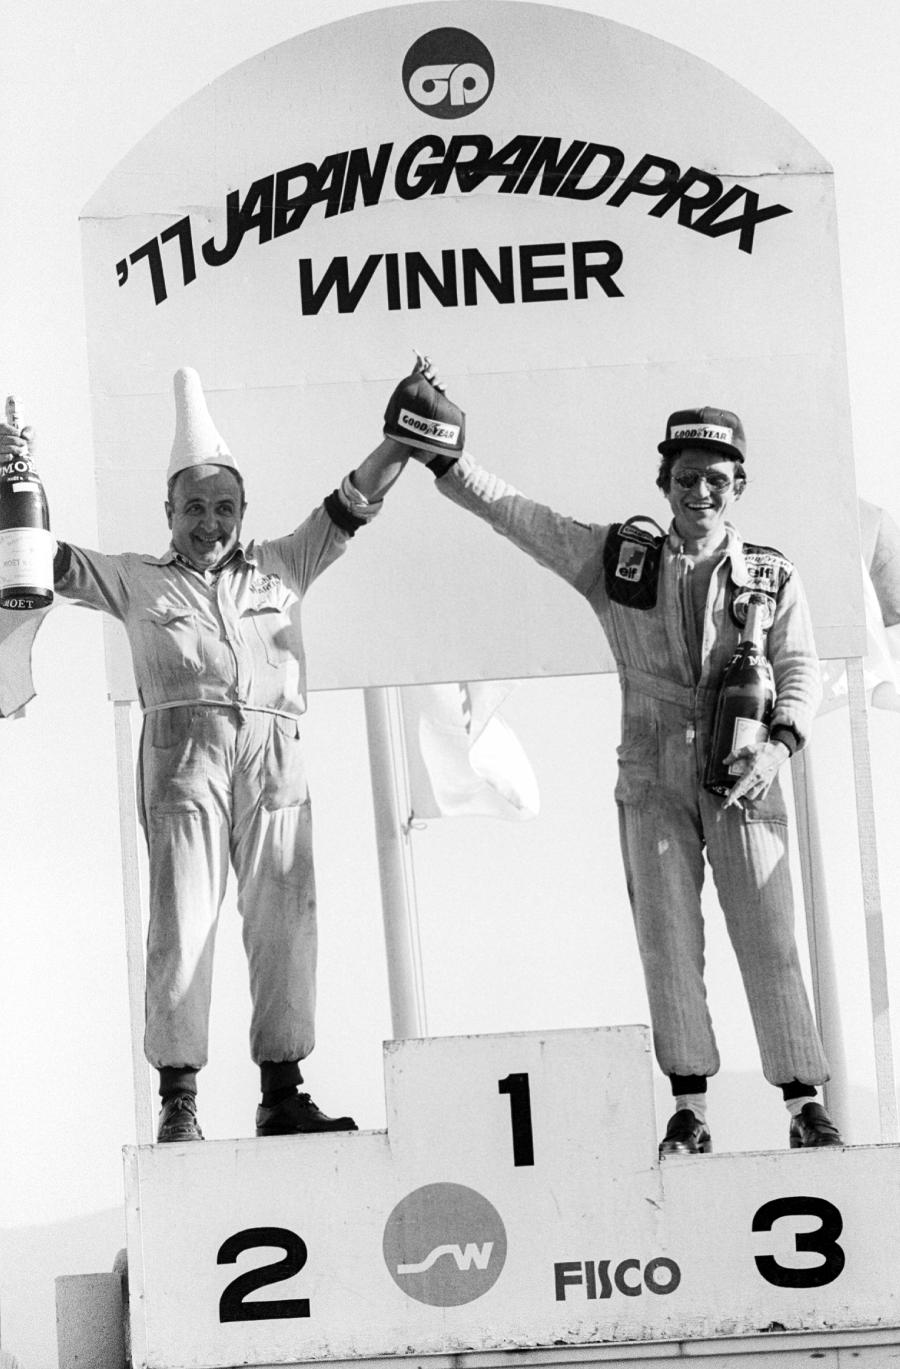 Patrick Depailler was the only driver to take to the podium and celebrates with the Marelli Magneti representative